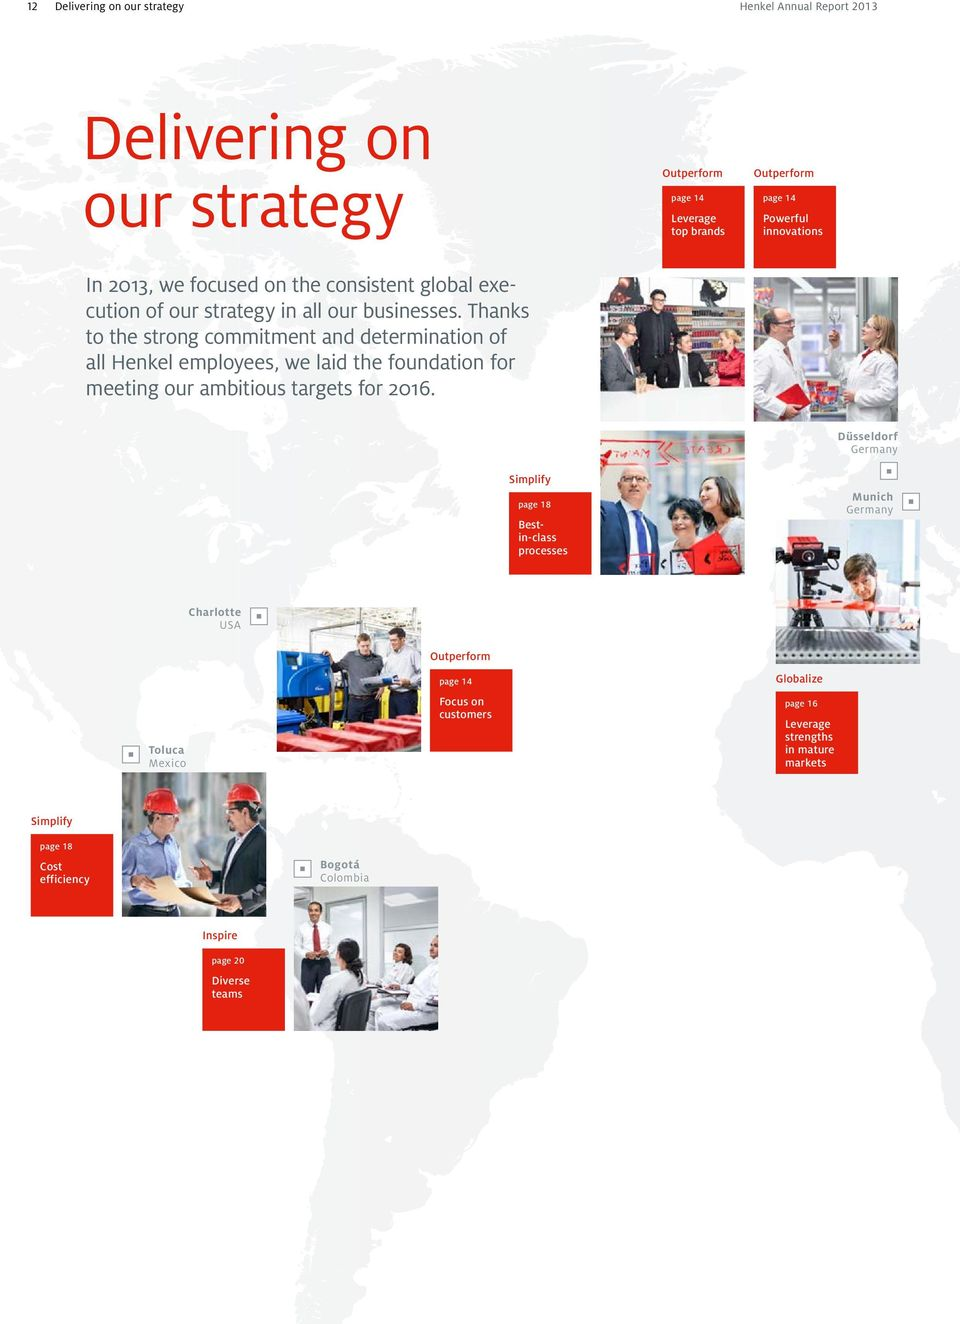 Thanks to the strong commitment and deter mination of all Henkel employees, we laid the foundation for meeting our ambitious targets for 2016.